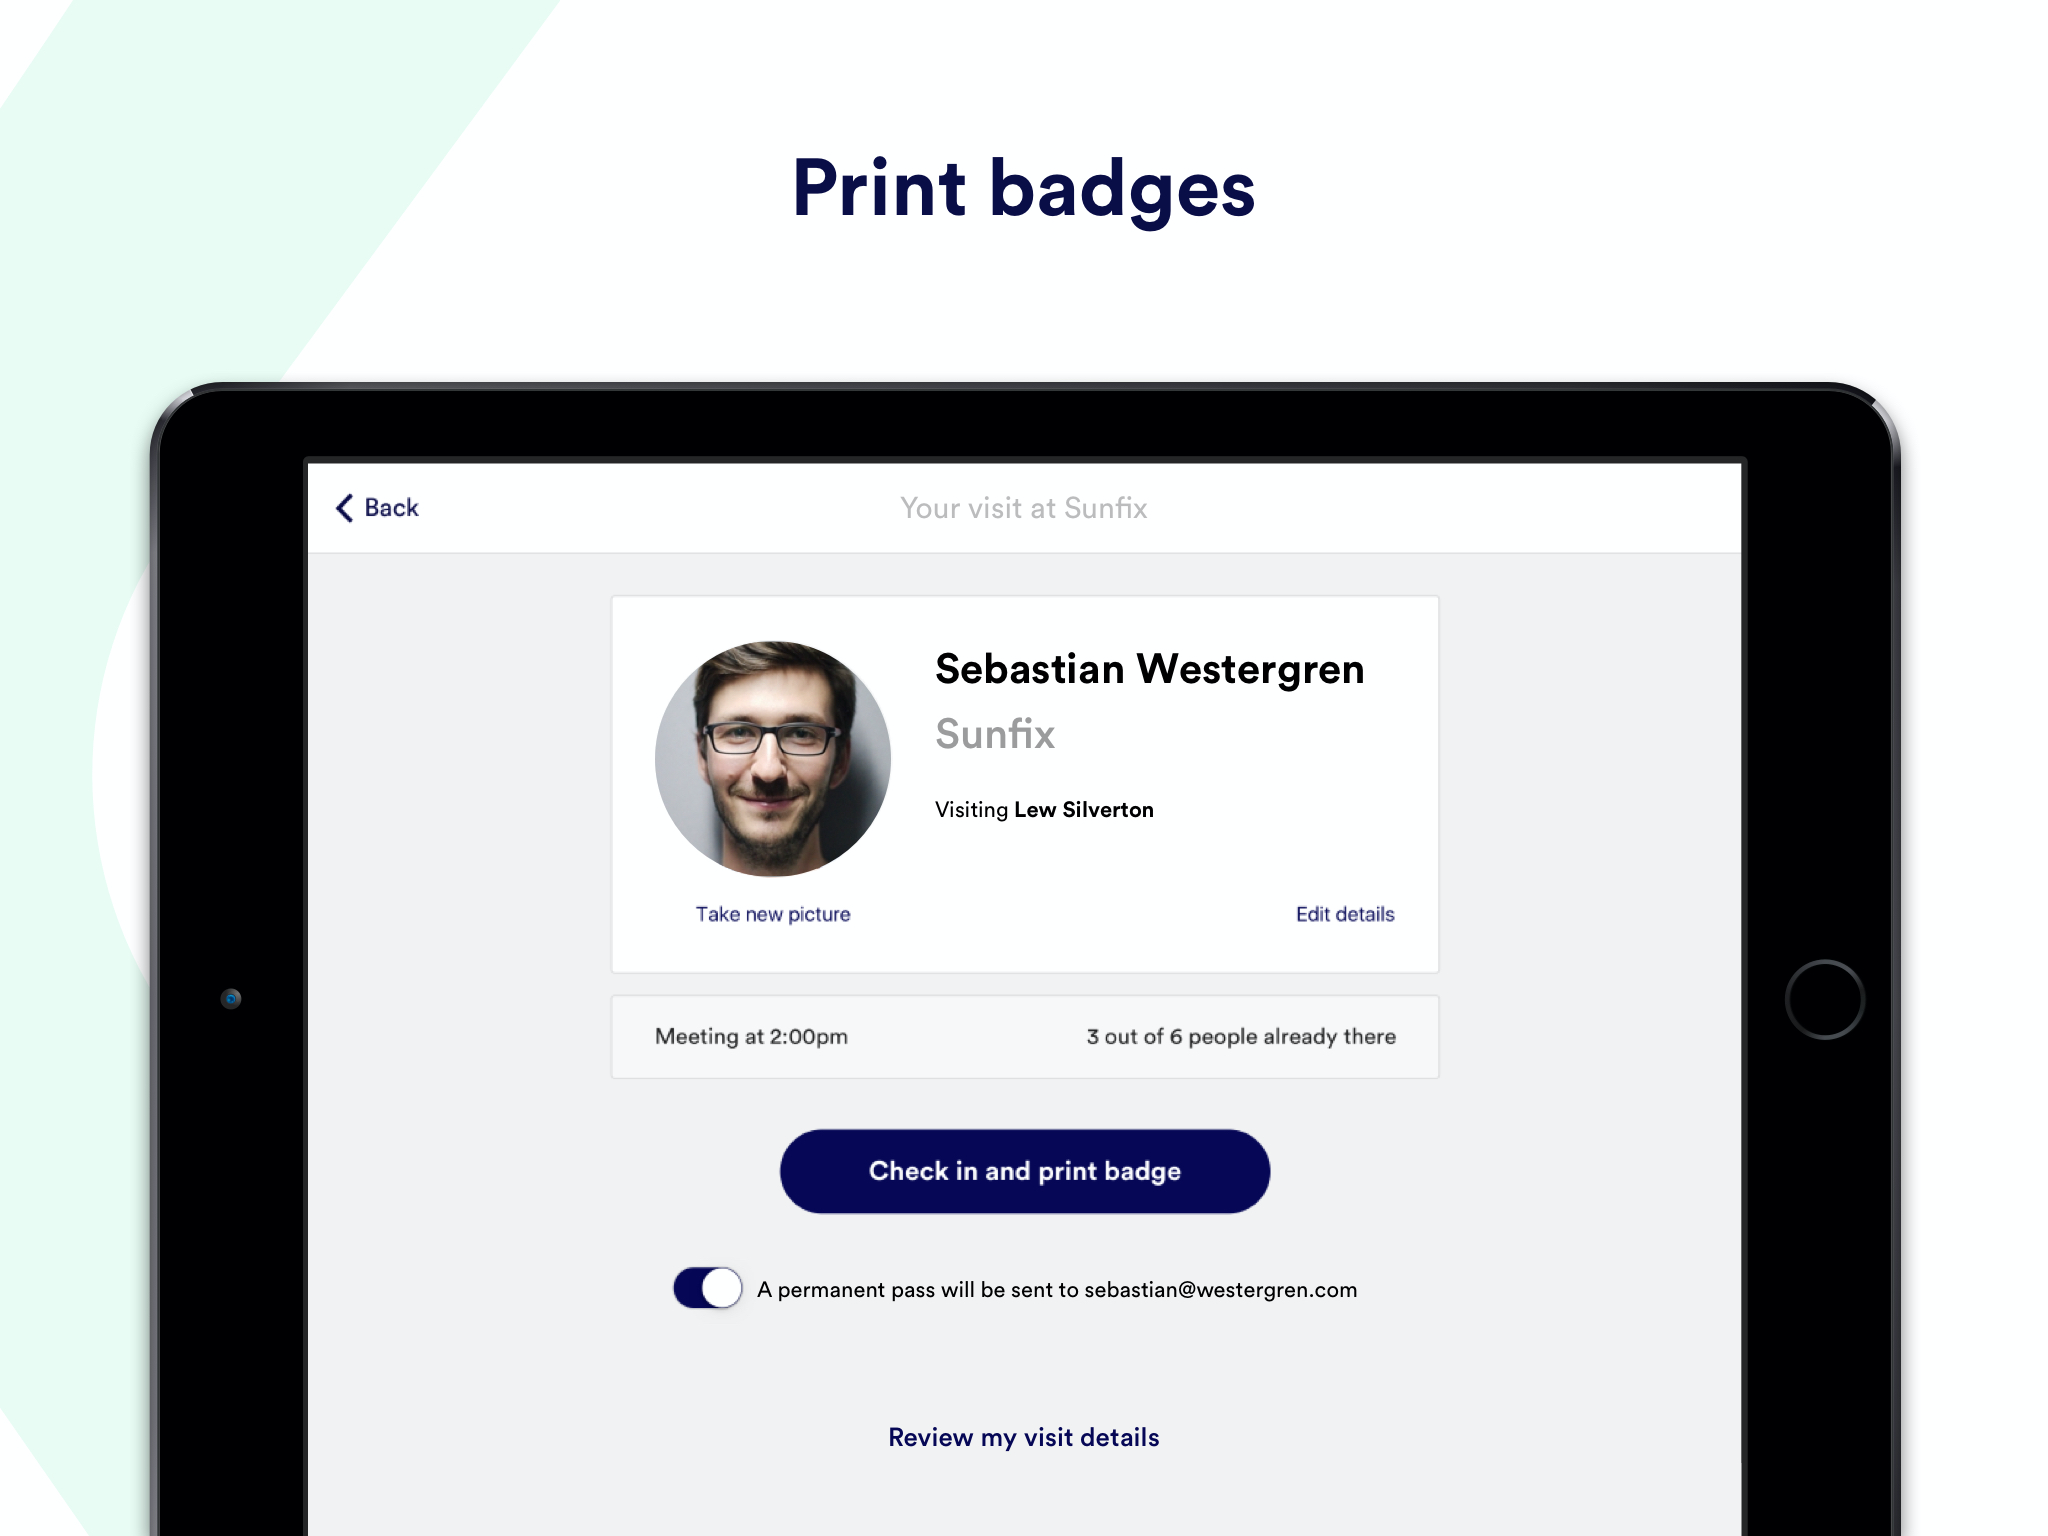 Customize badges with all the information you find necessary: a picture, the visitor's name, the host's name, the type of visitor, the Wi-Fi password, a QR code, and more.